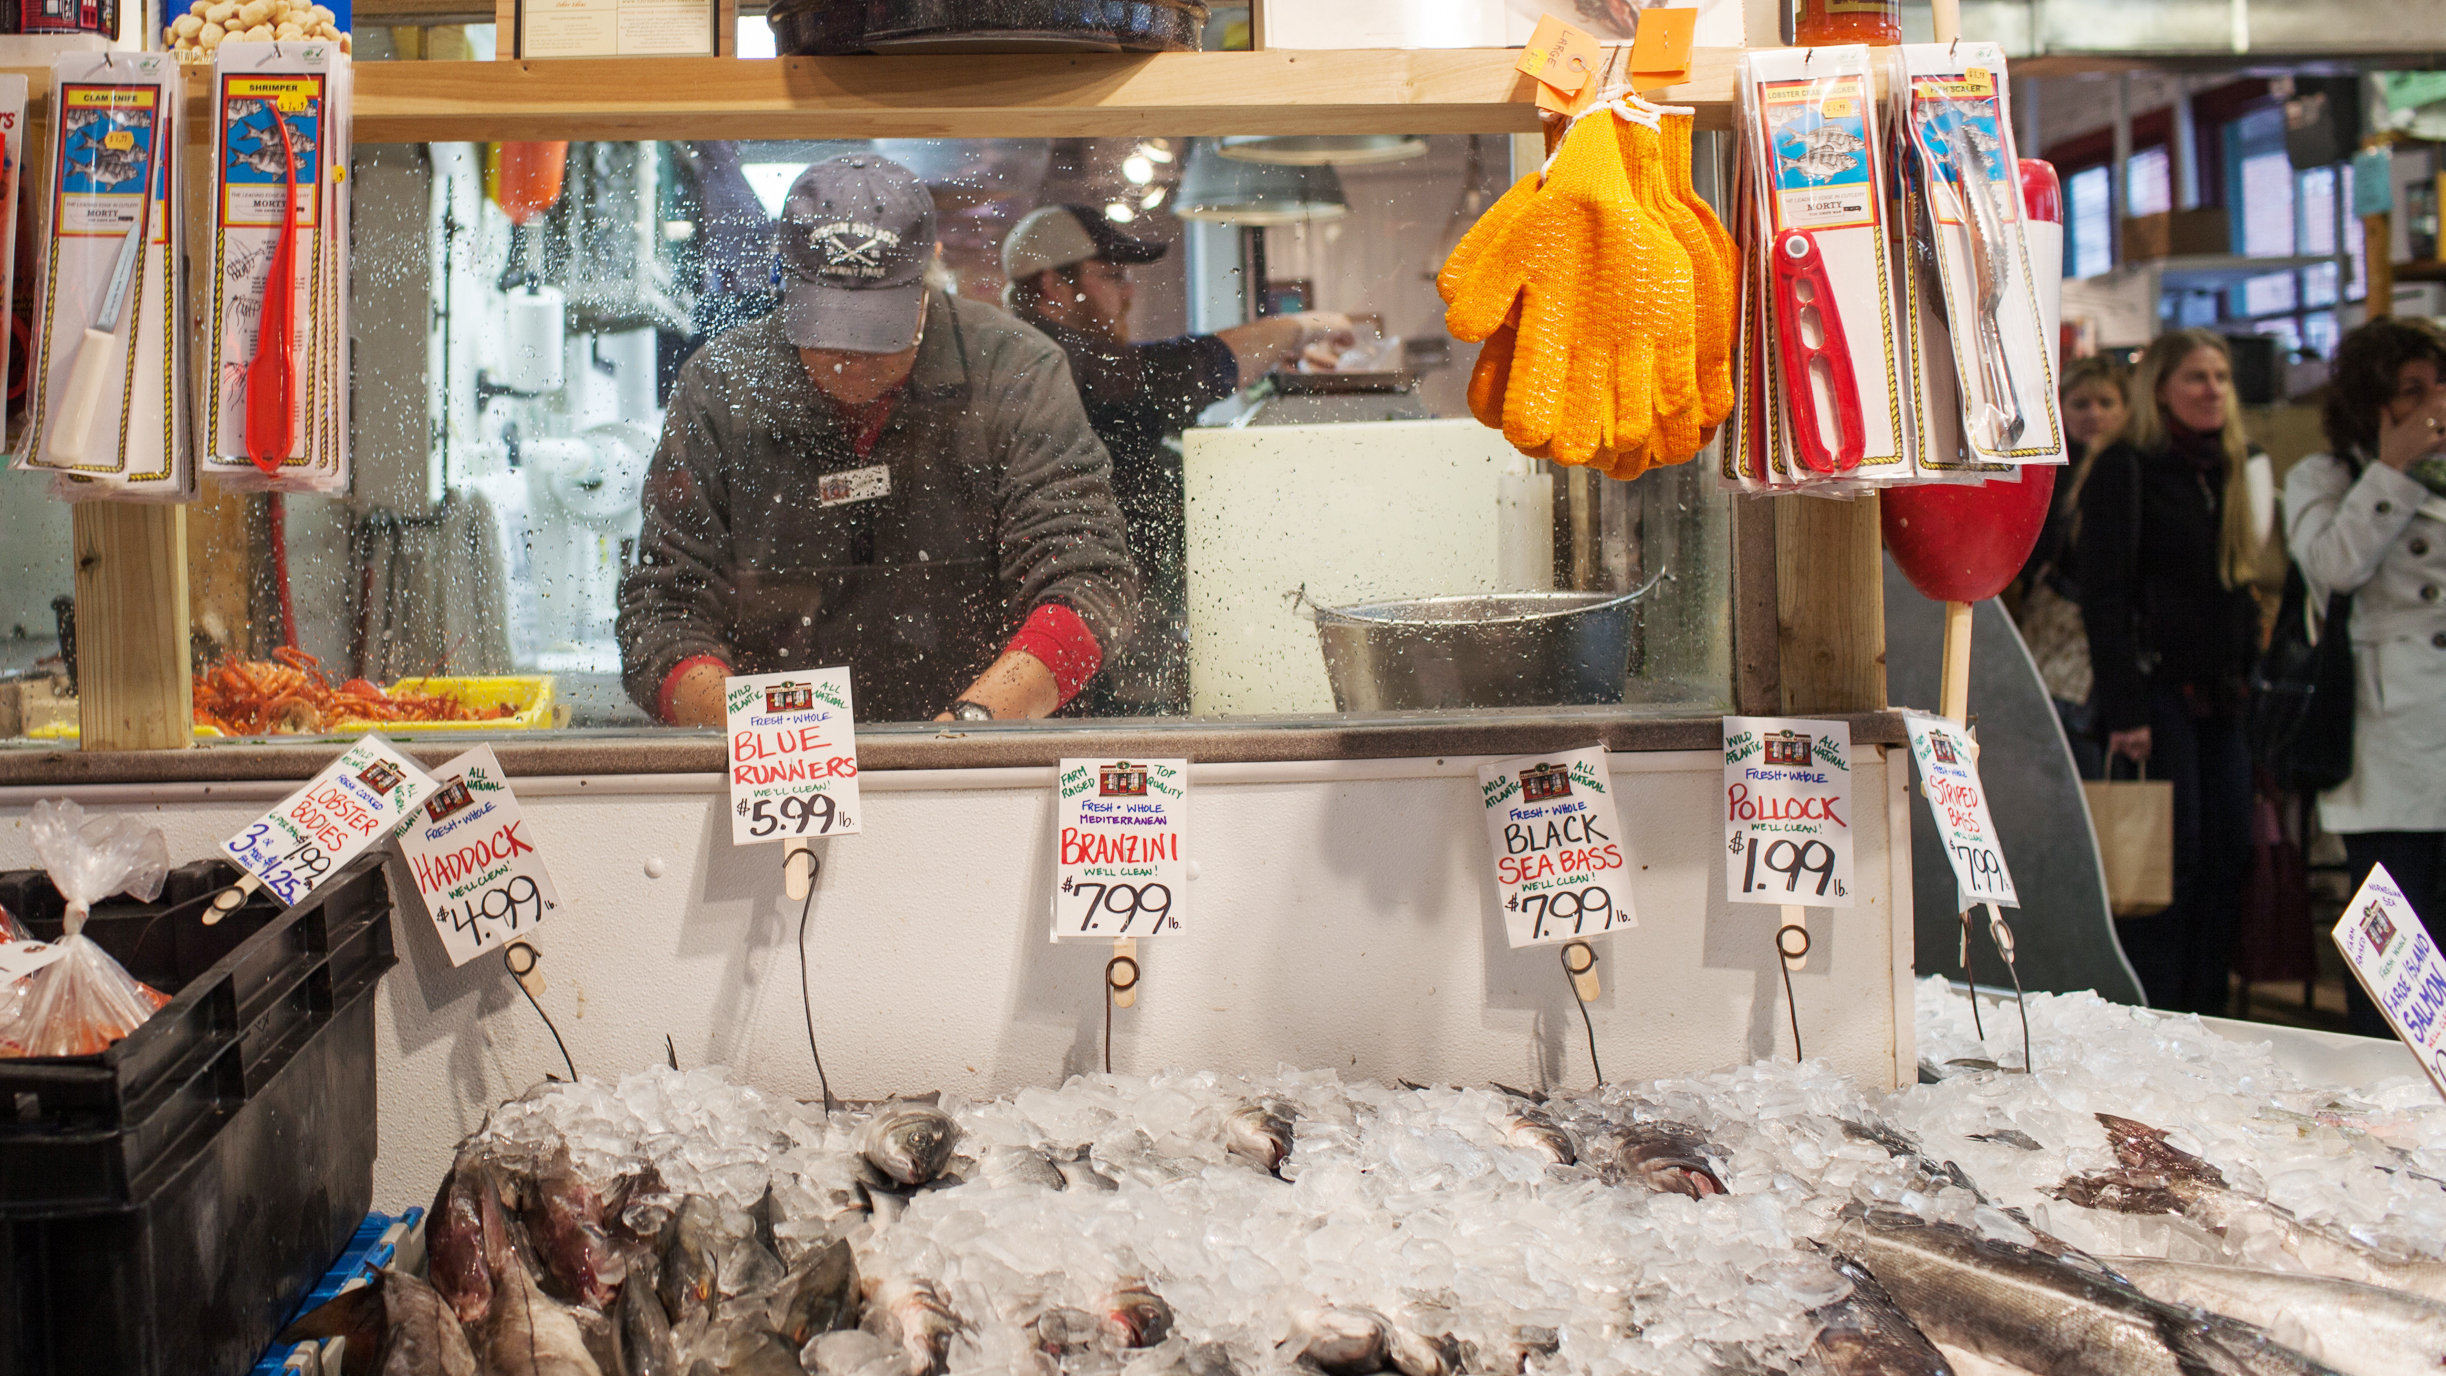 Do fish names encourage fishy business ncpr news for Harbor fish market portland maine